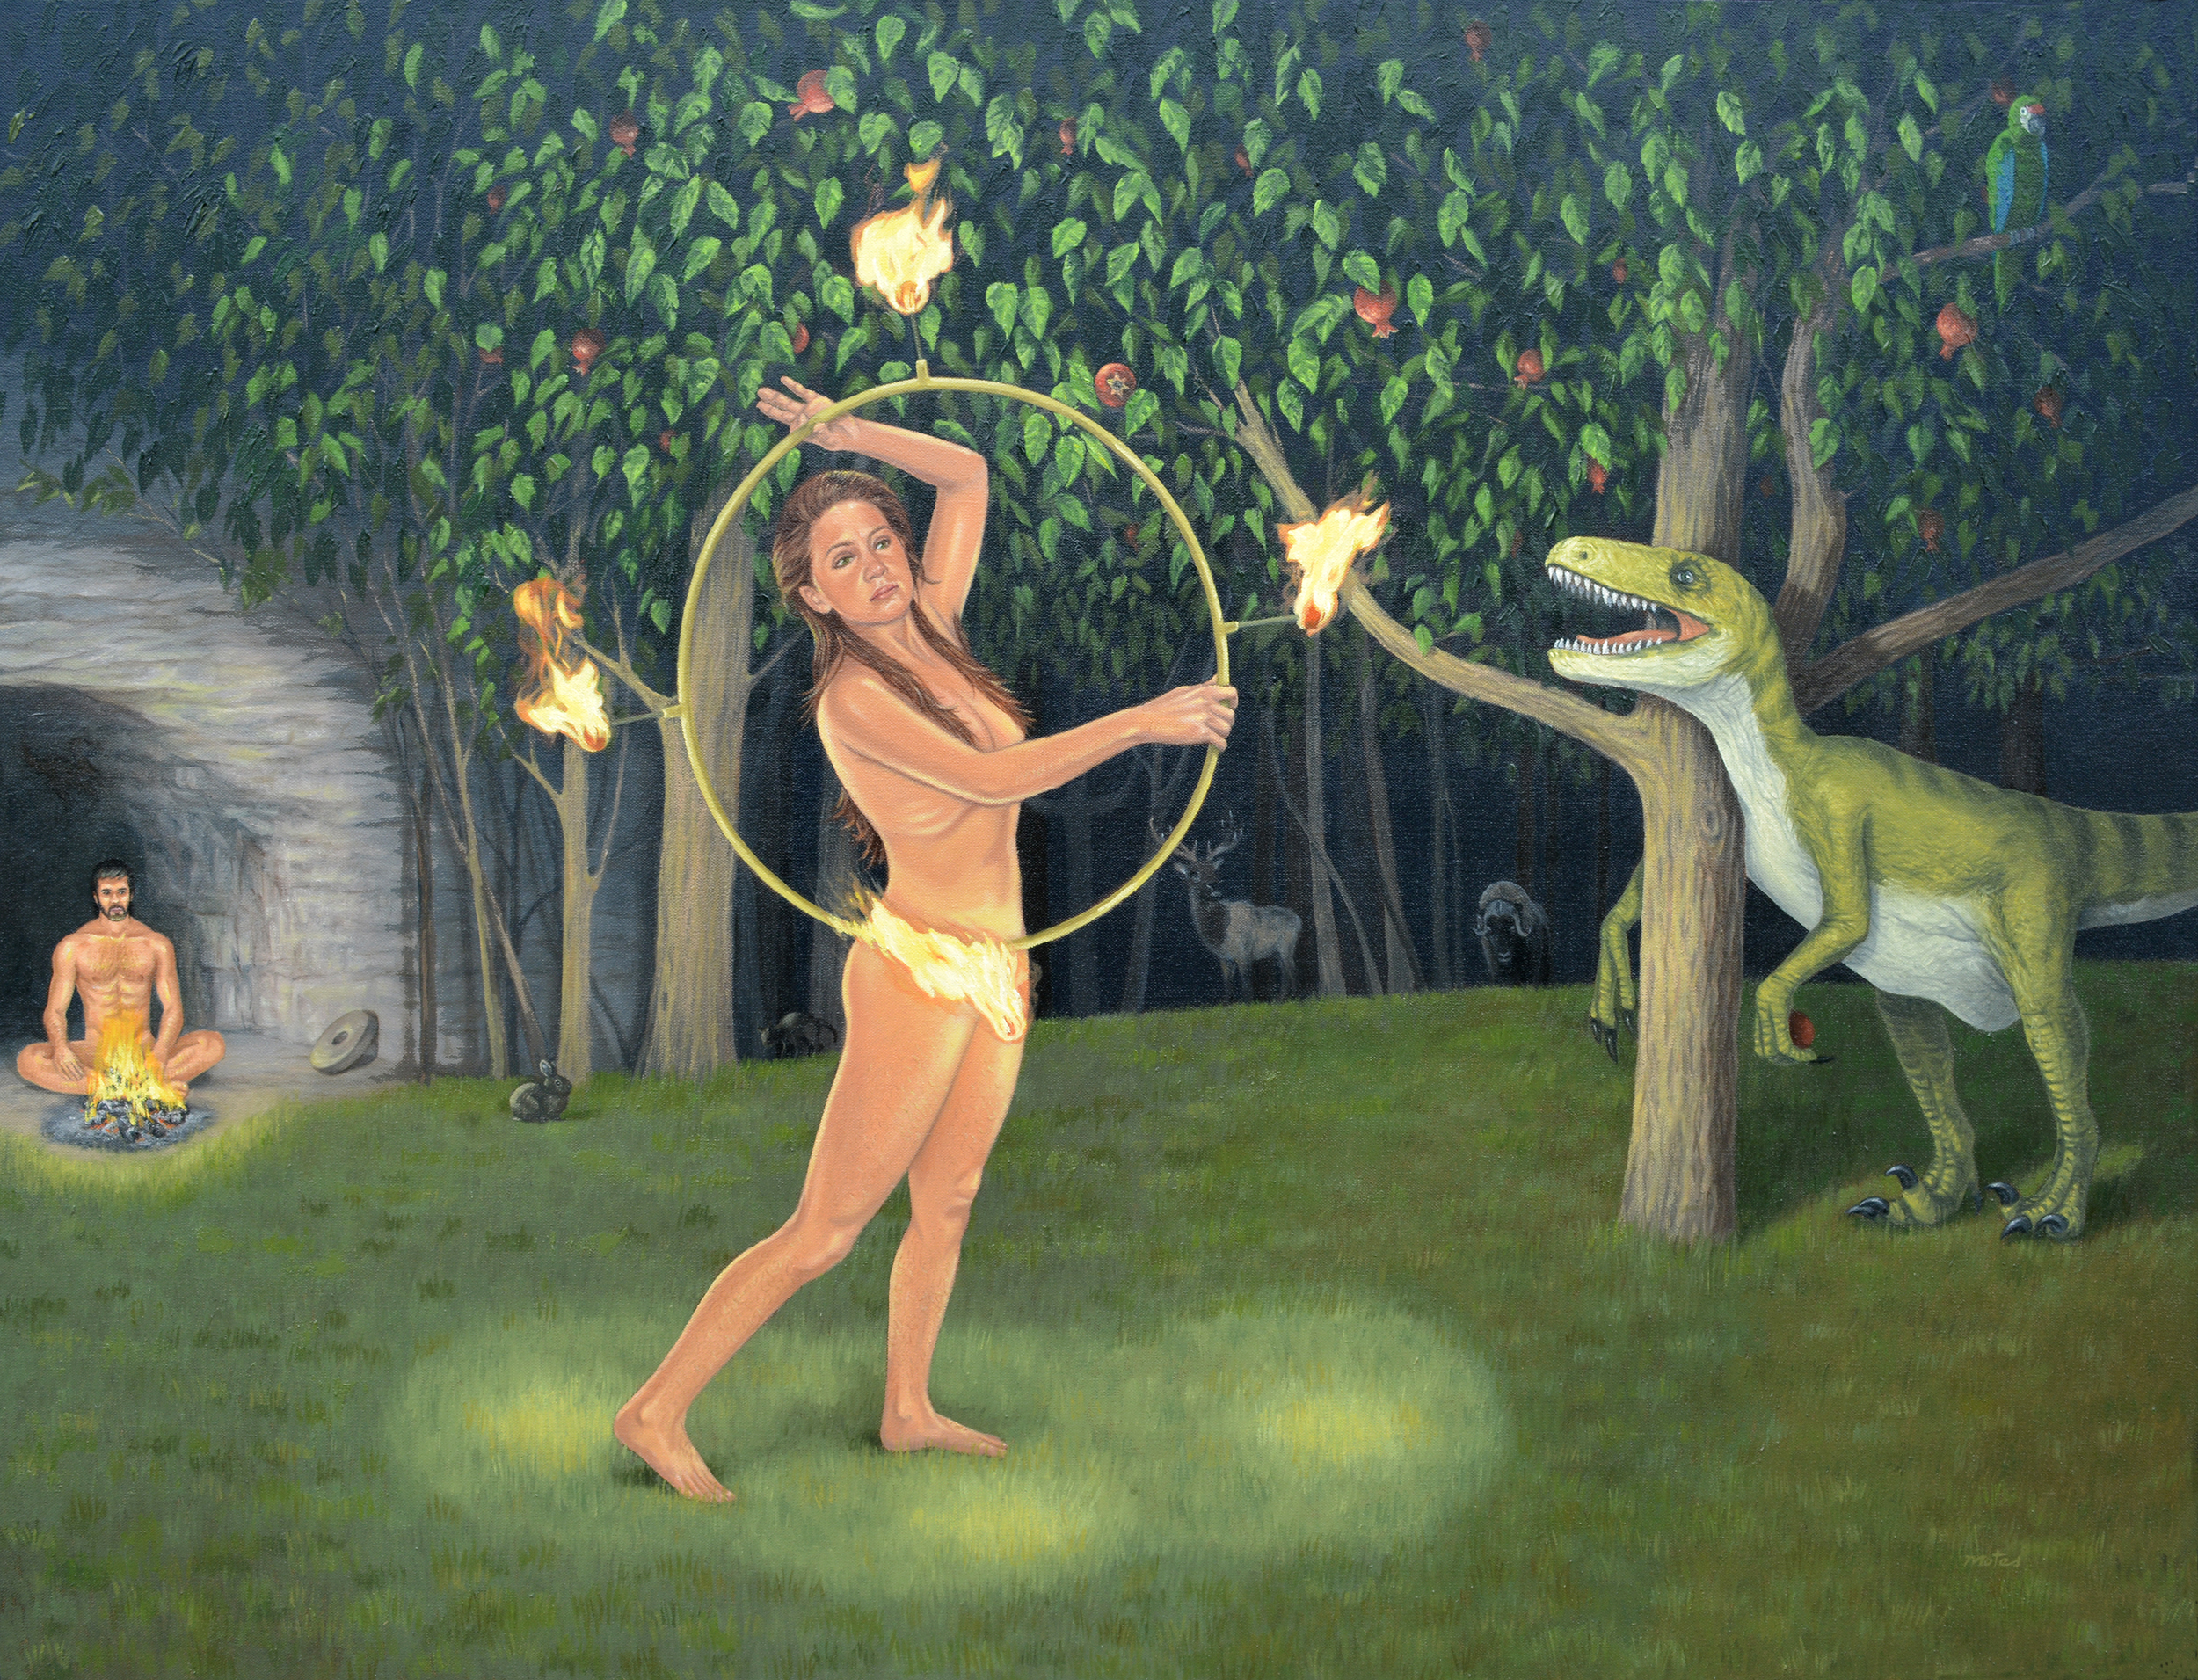 """Midnight in the Garden"" by Barry Motes,, 36x48in, oil on canvas, $2400 